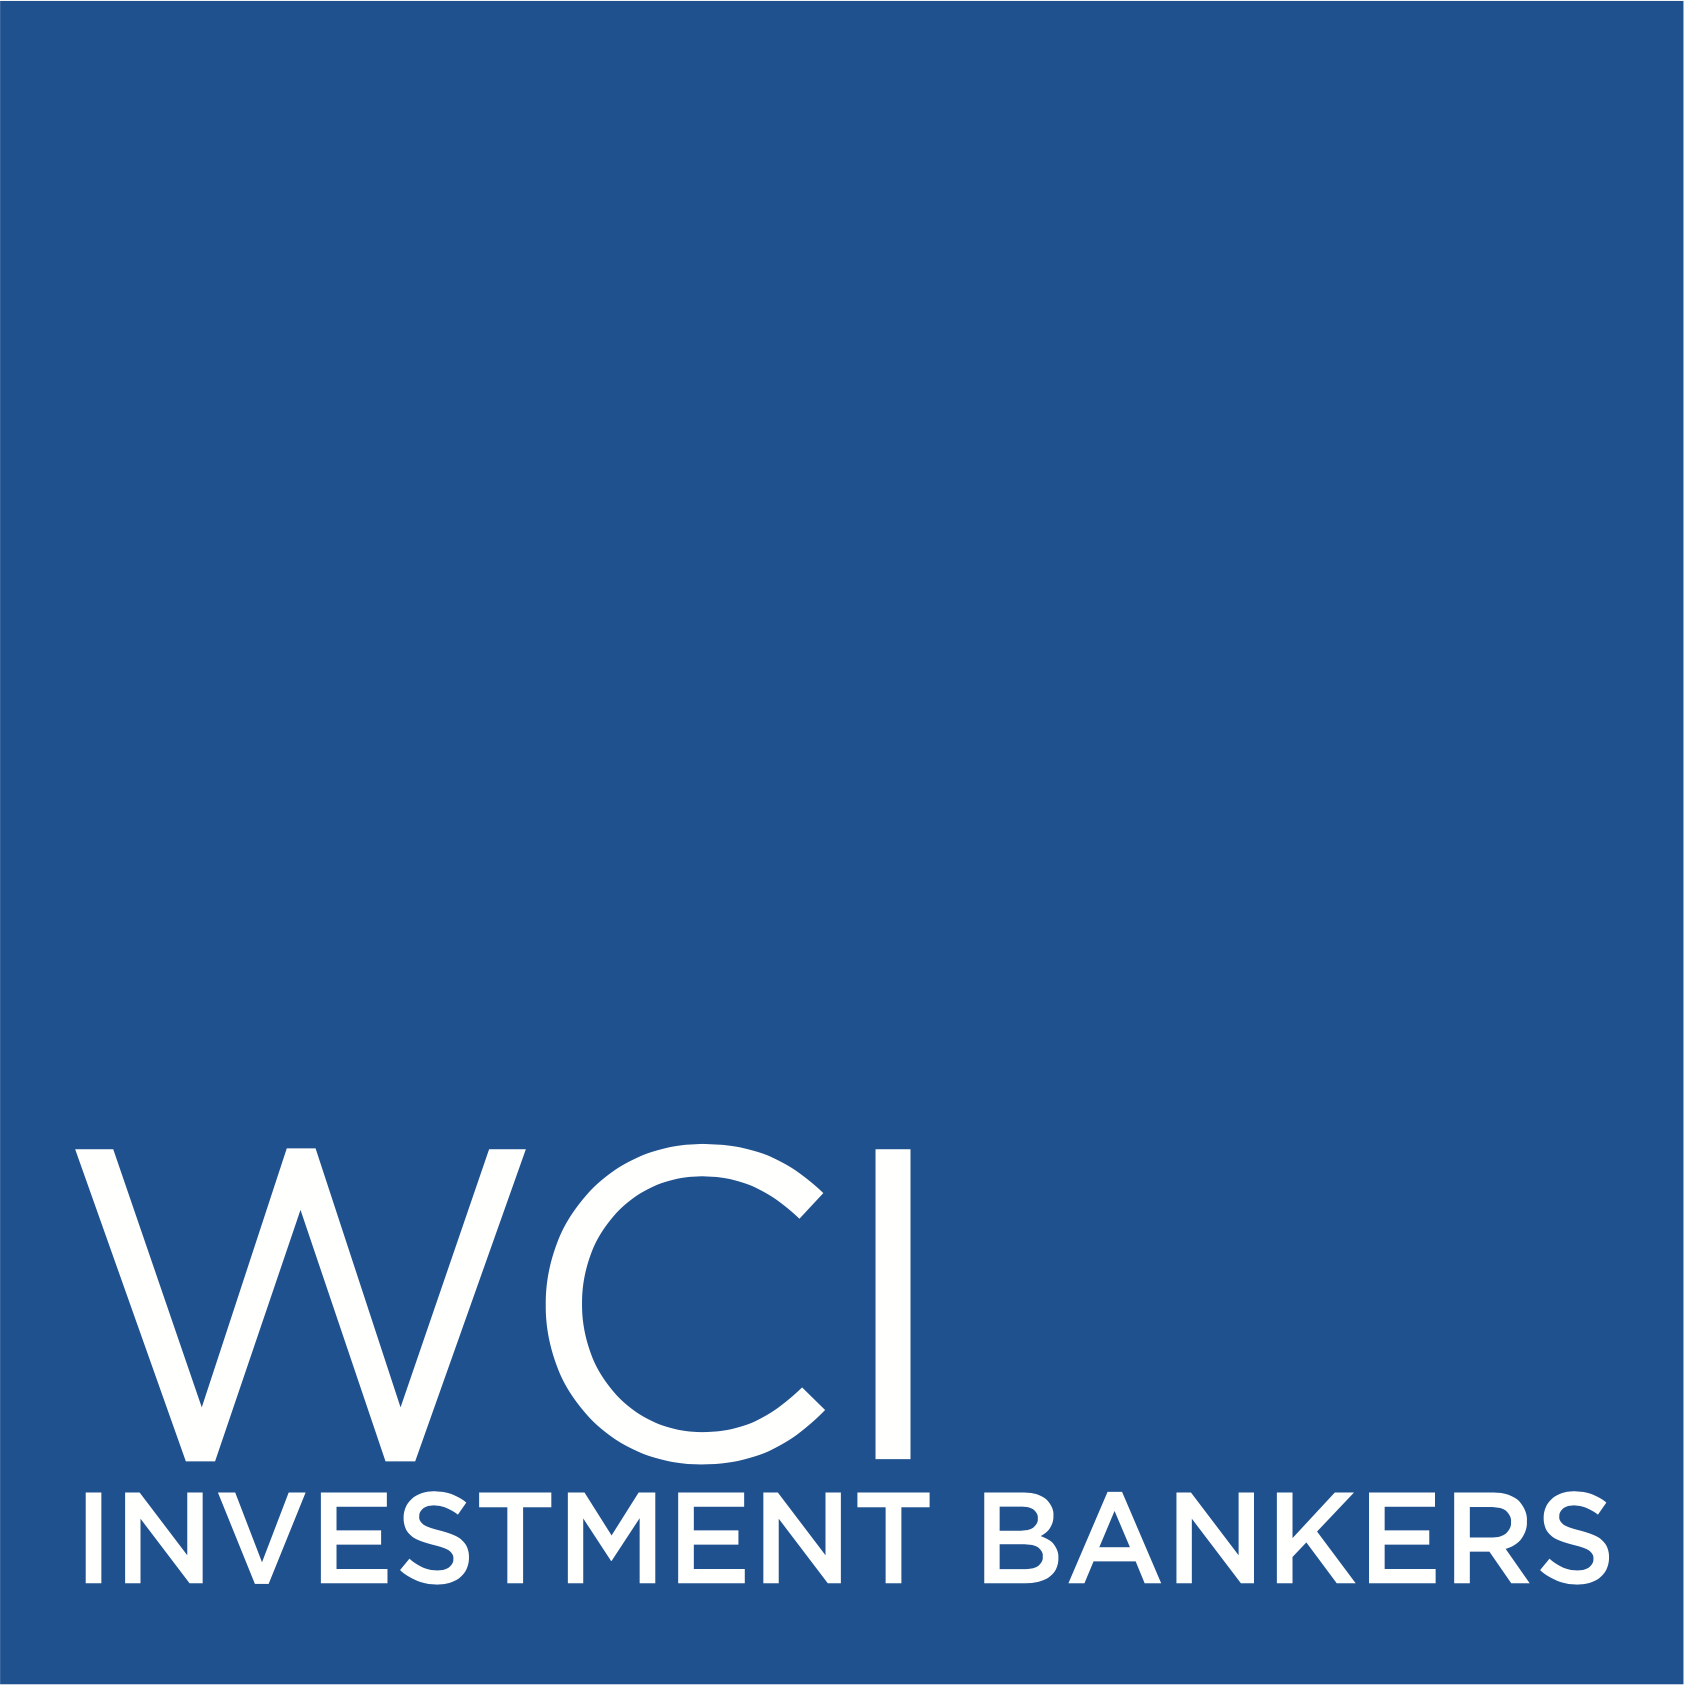 WCI Europe | Investment bankers